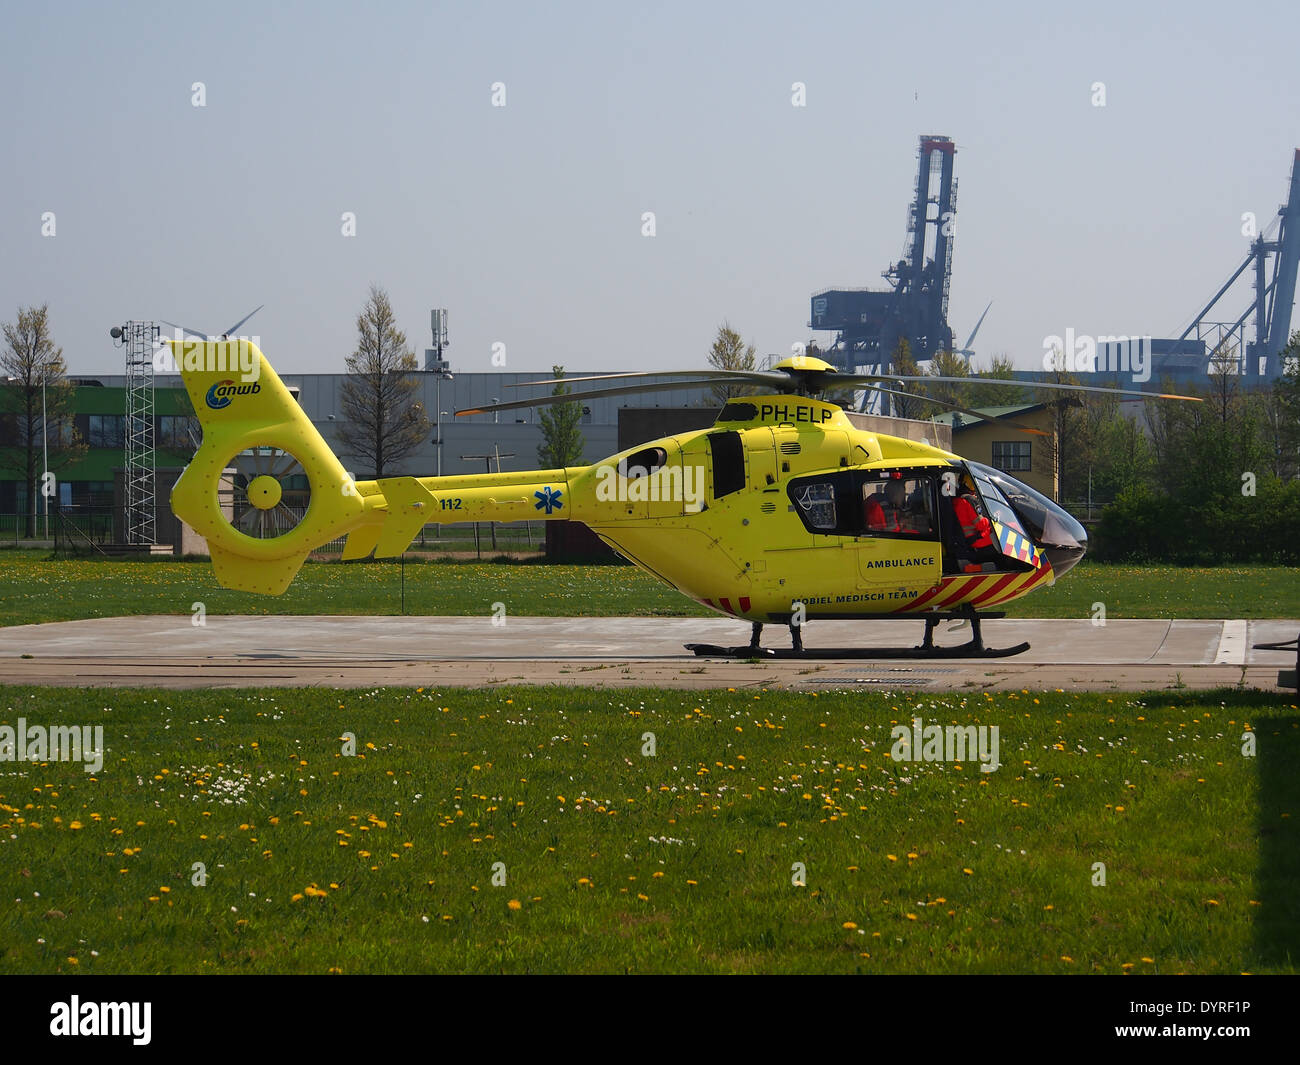 Eurocopter EC 135T 2 PH ELP At Amsterdam Heliport ICAO EHHA Port Of